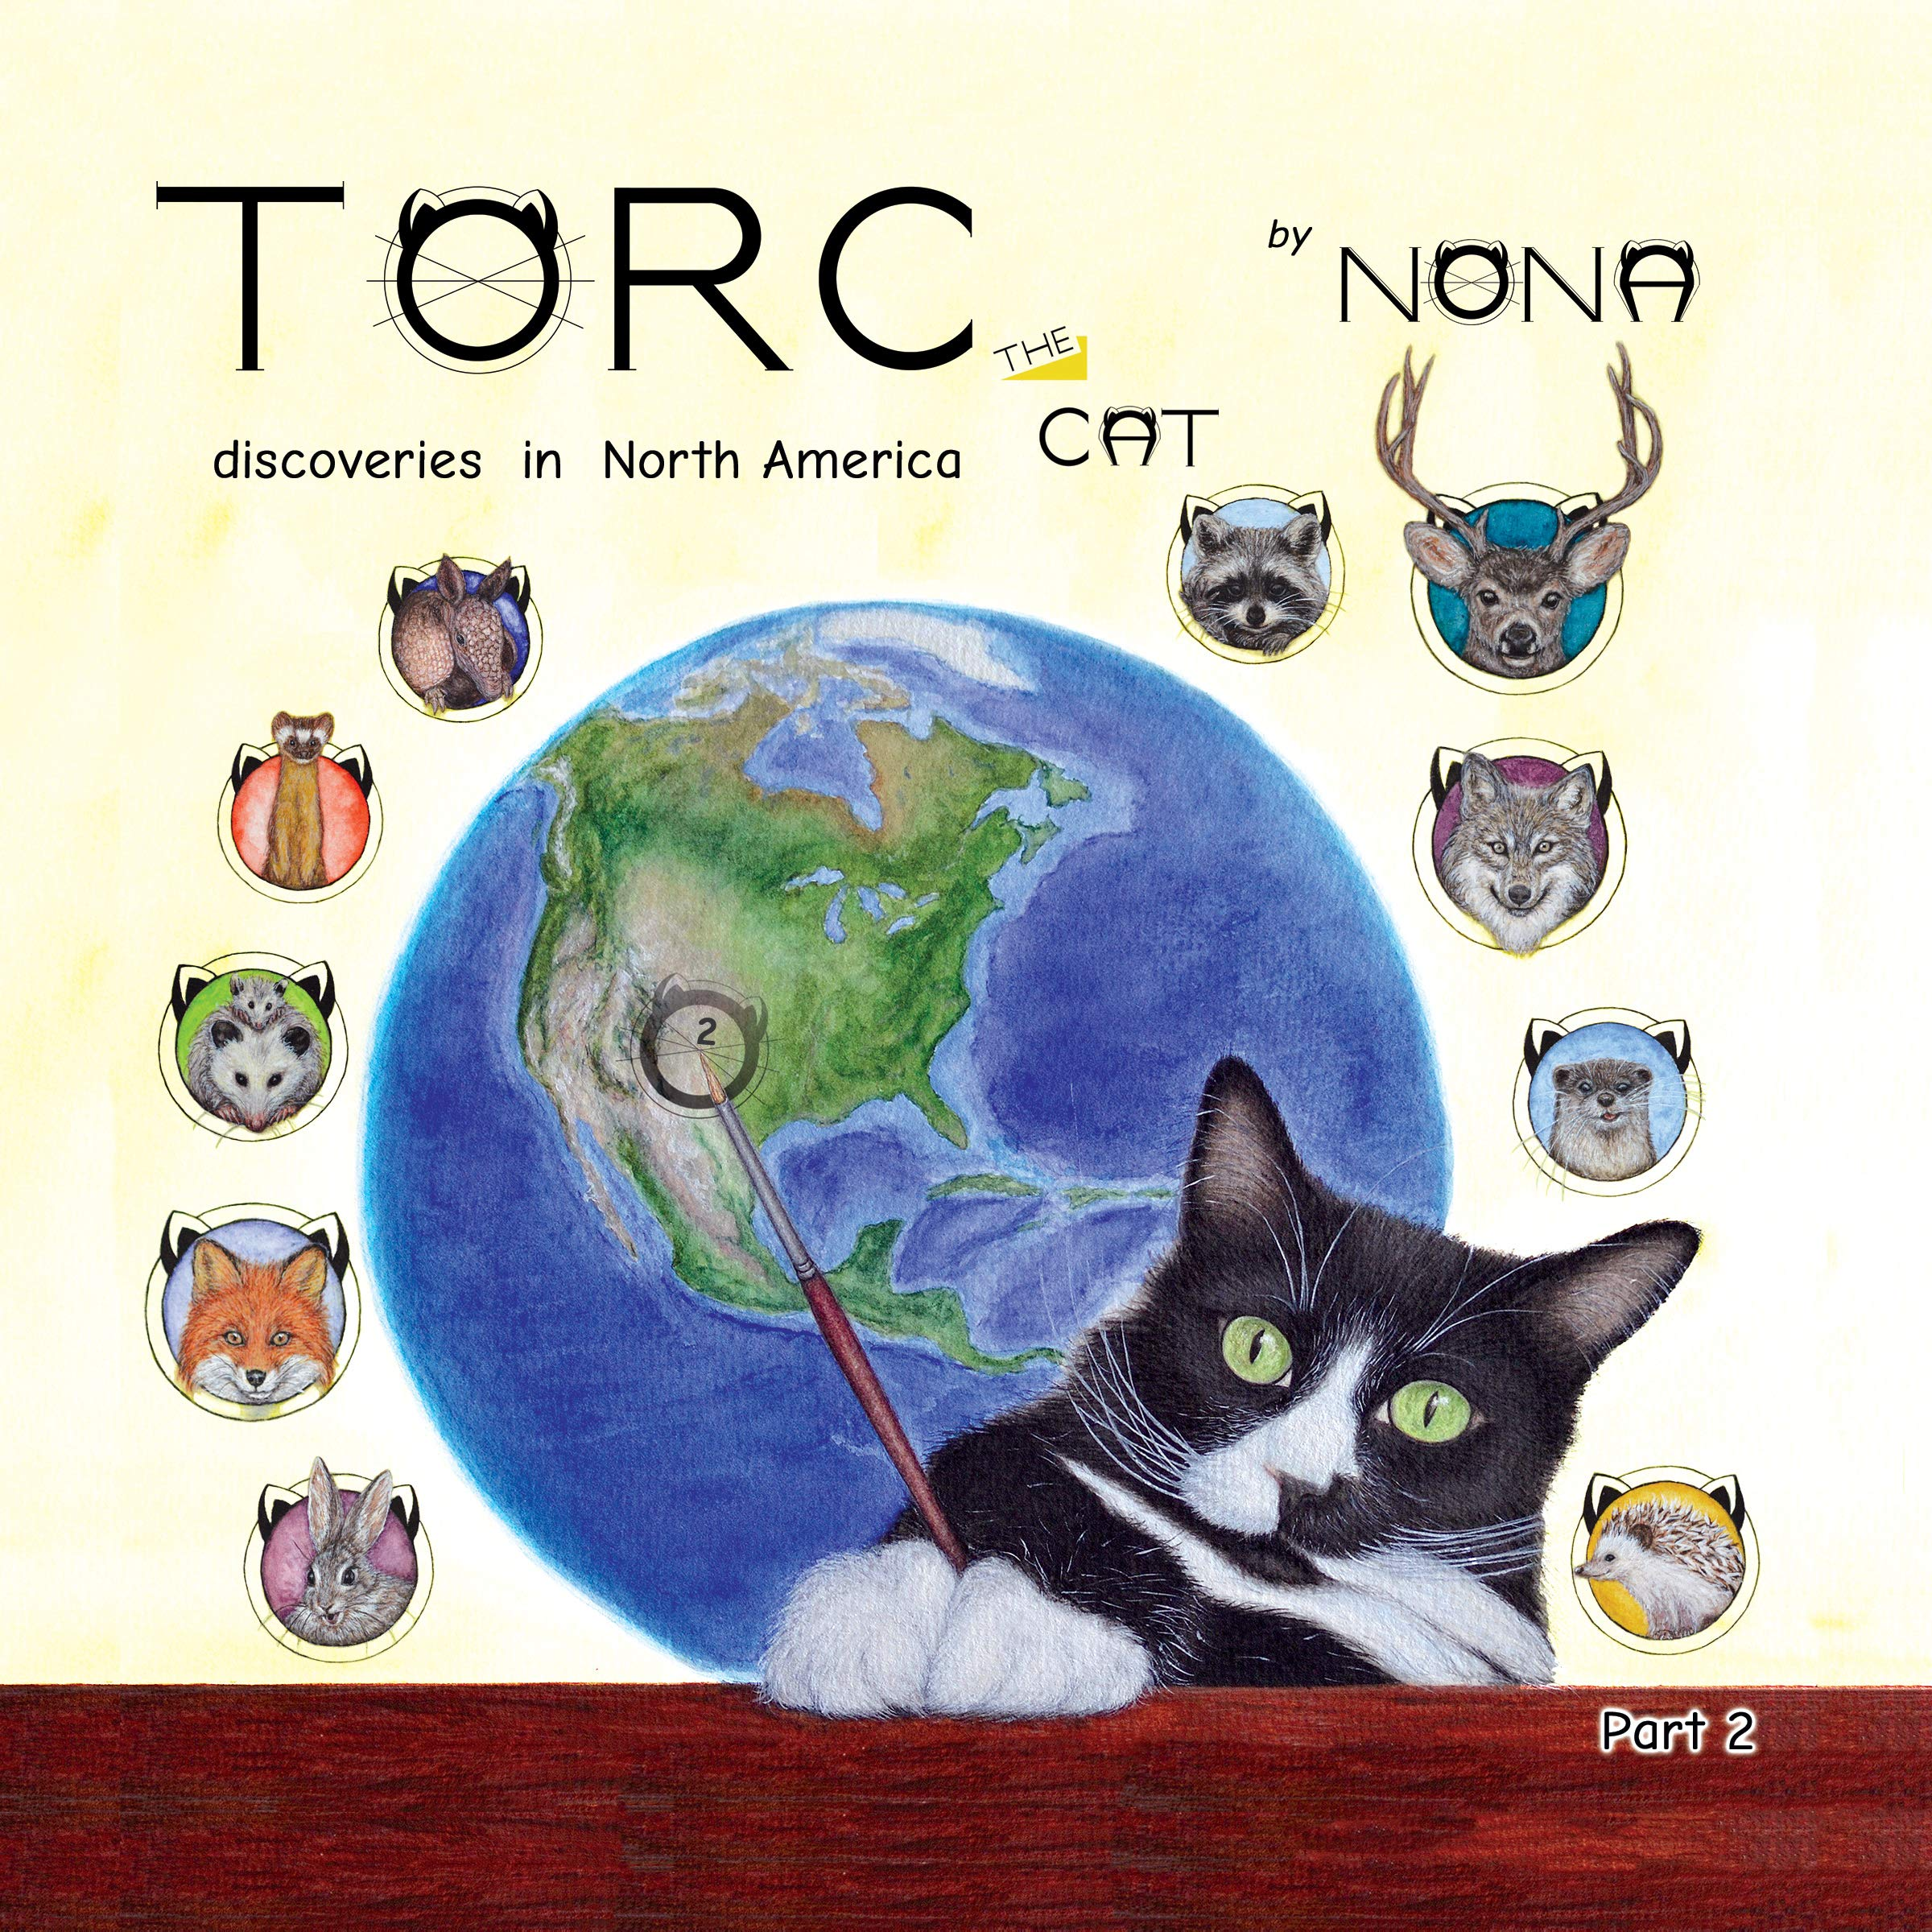 TORC the CAT discoveries in North America part 2